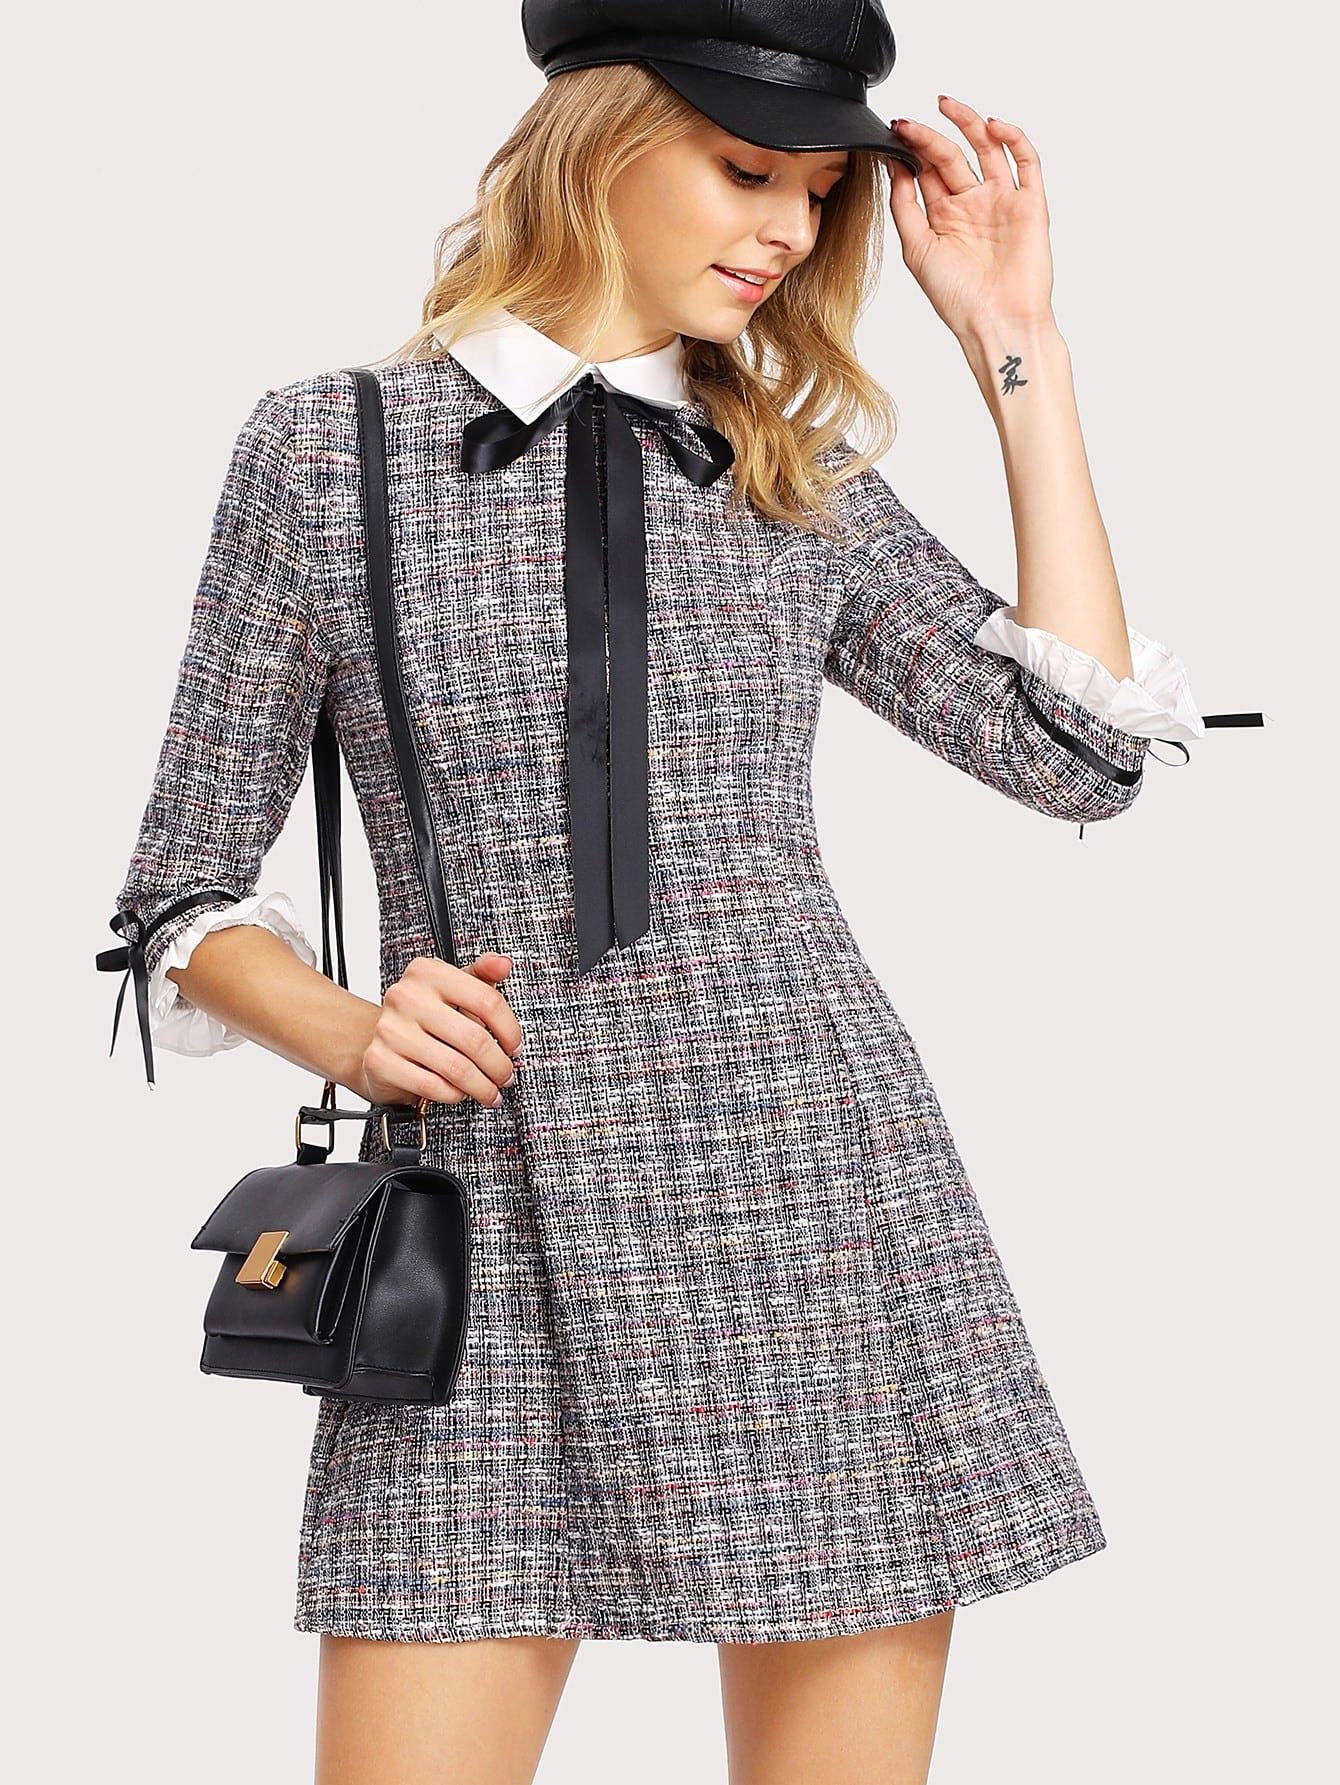 Contrast Collar And Cuff Tweed Dress lace collar and cuff tunic dress